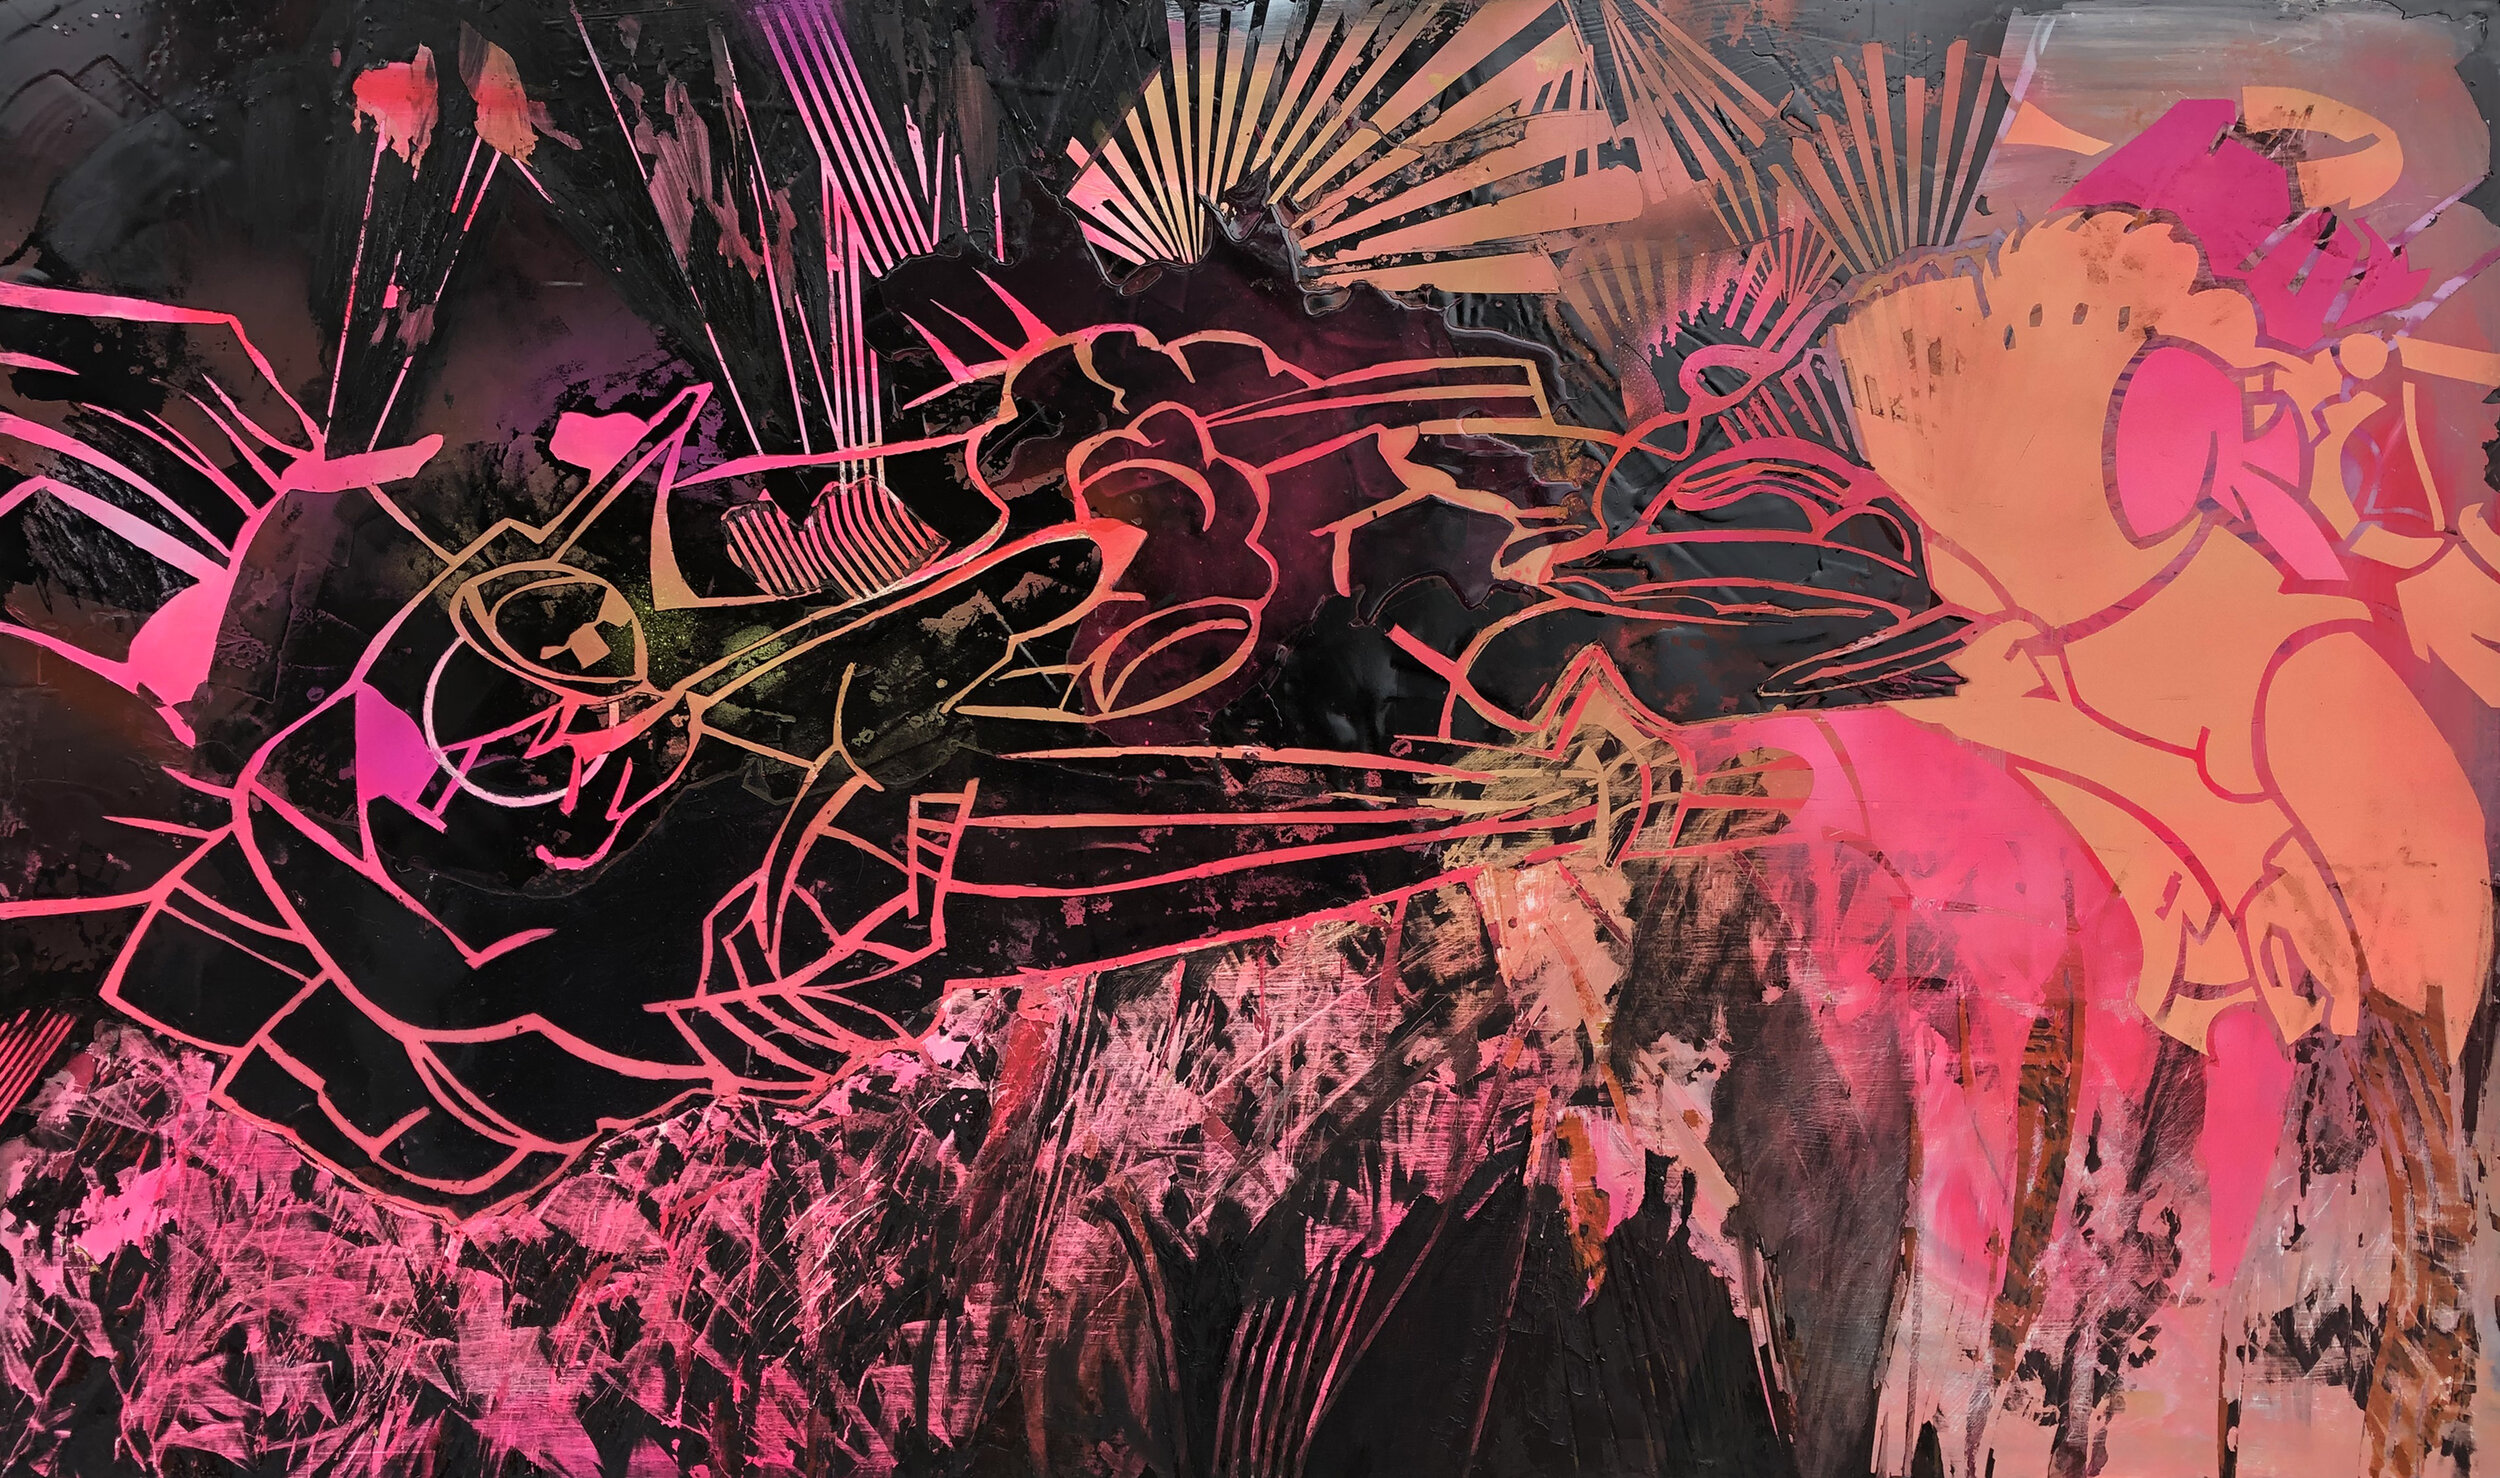 Leigh Anne Chambers   ,   My Neighbor is a Rooster , 2019, Liquid rubber, oil and spray paint on panel, 60 × 36 in,  View on Artsy